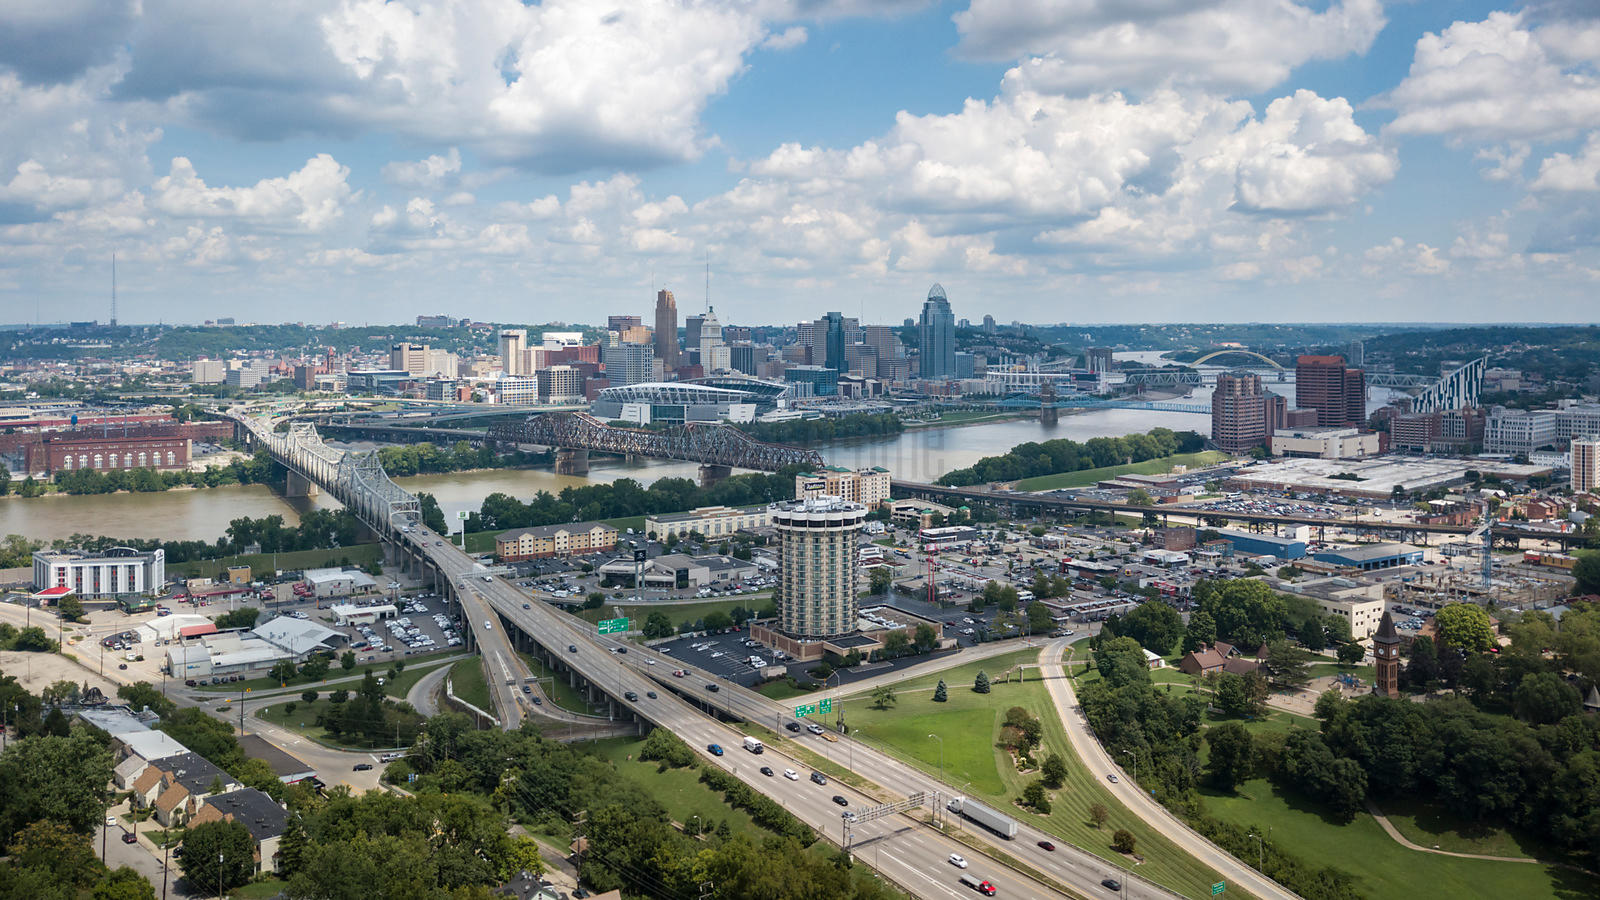 Elevated View of the Cincinnati Skyline from Devou Park